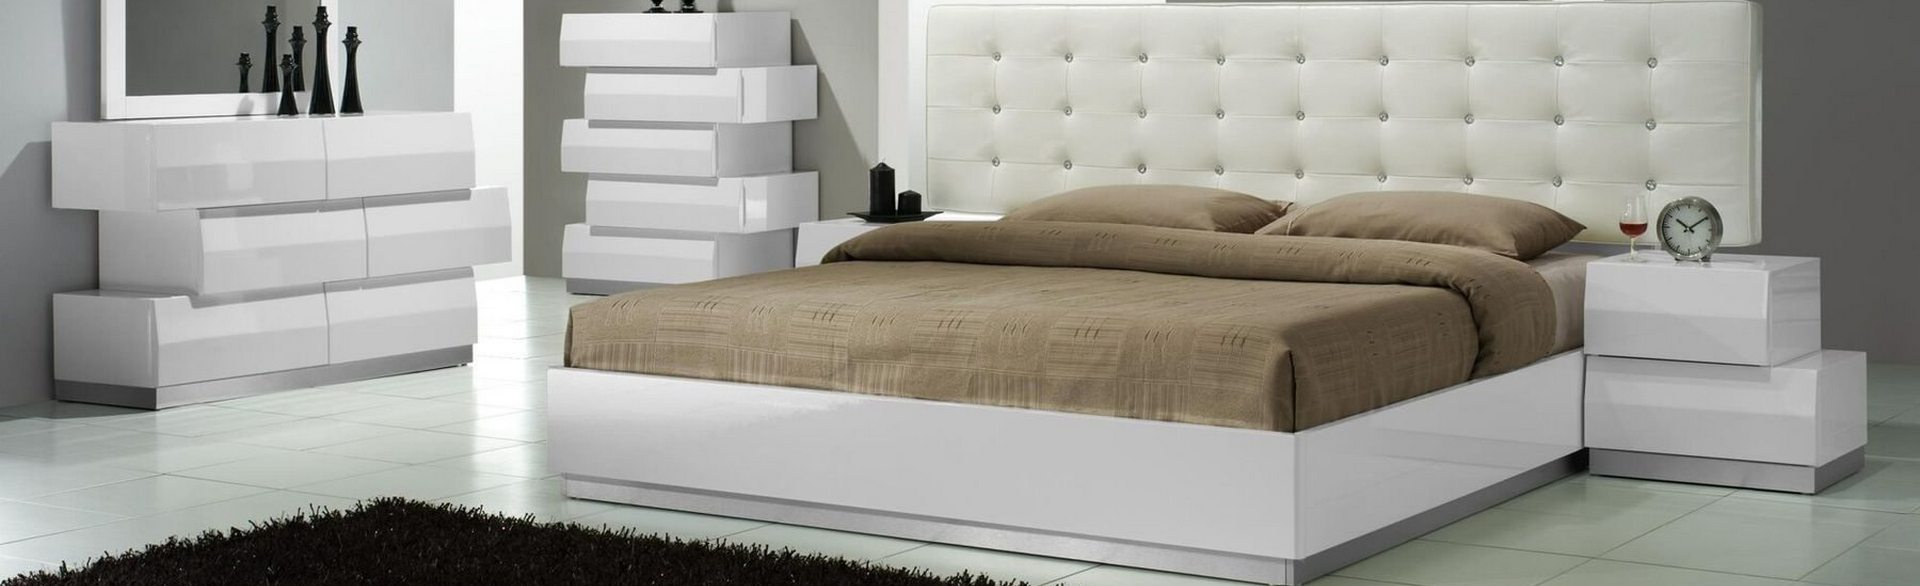 Firmest Mattresses On The Market 7 Best Mattresses For Platform Bed Apr 2019 Ultimate Guide